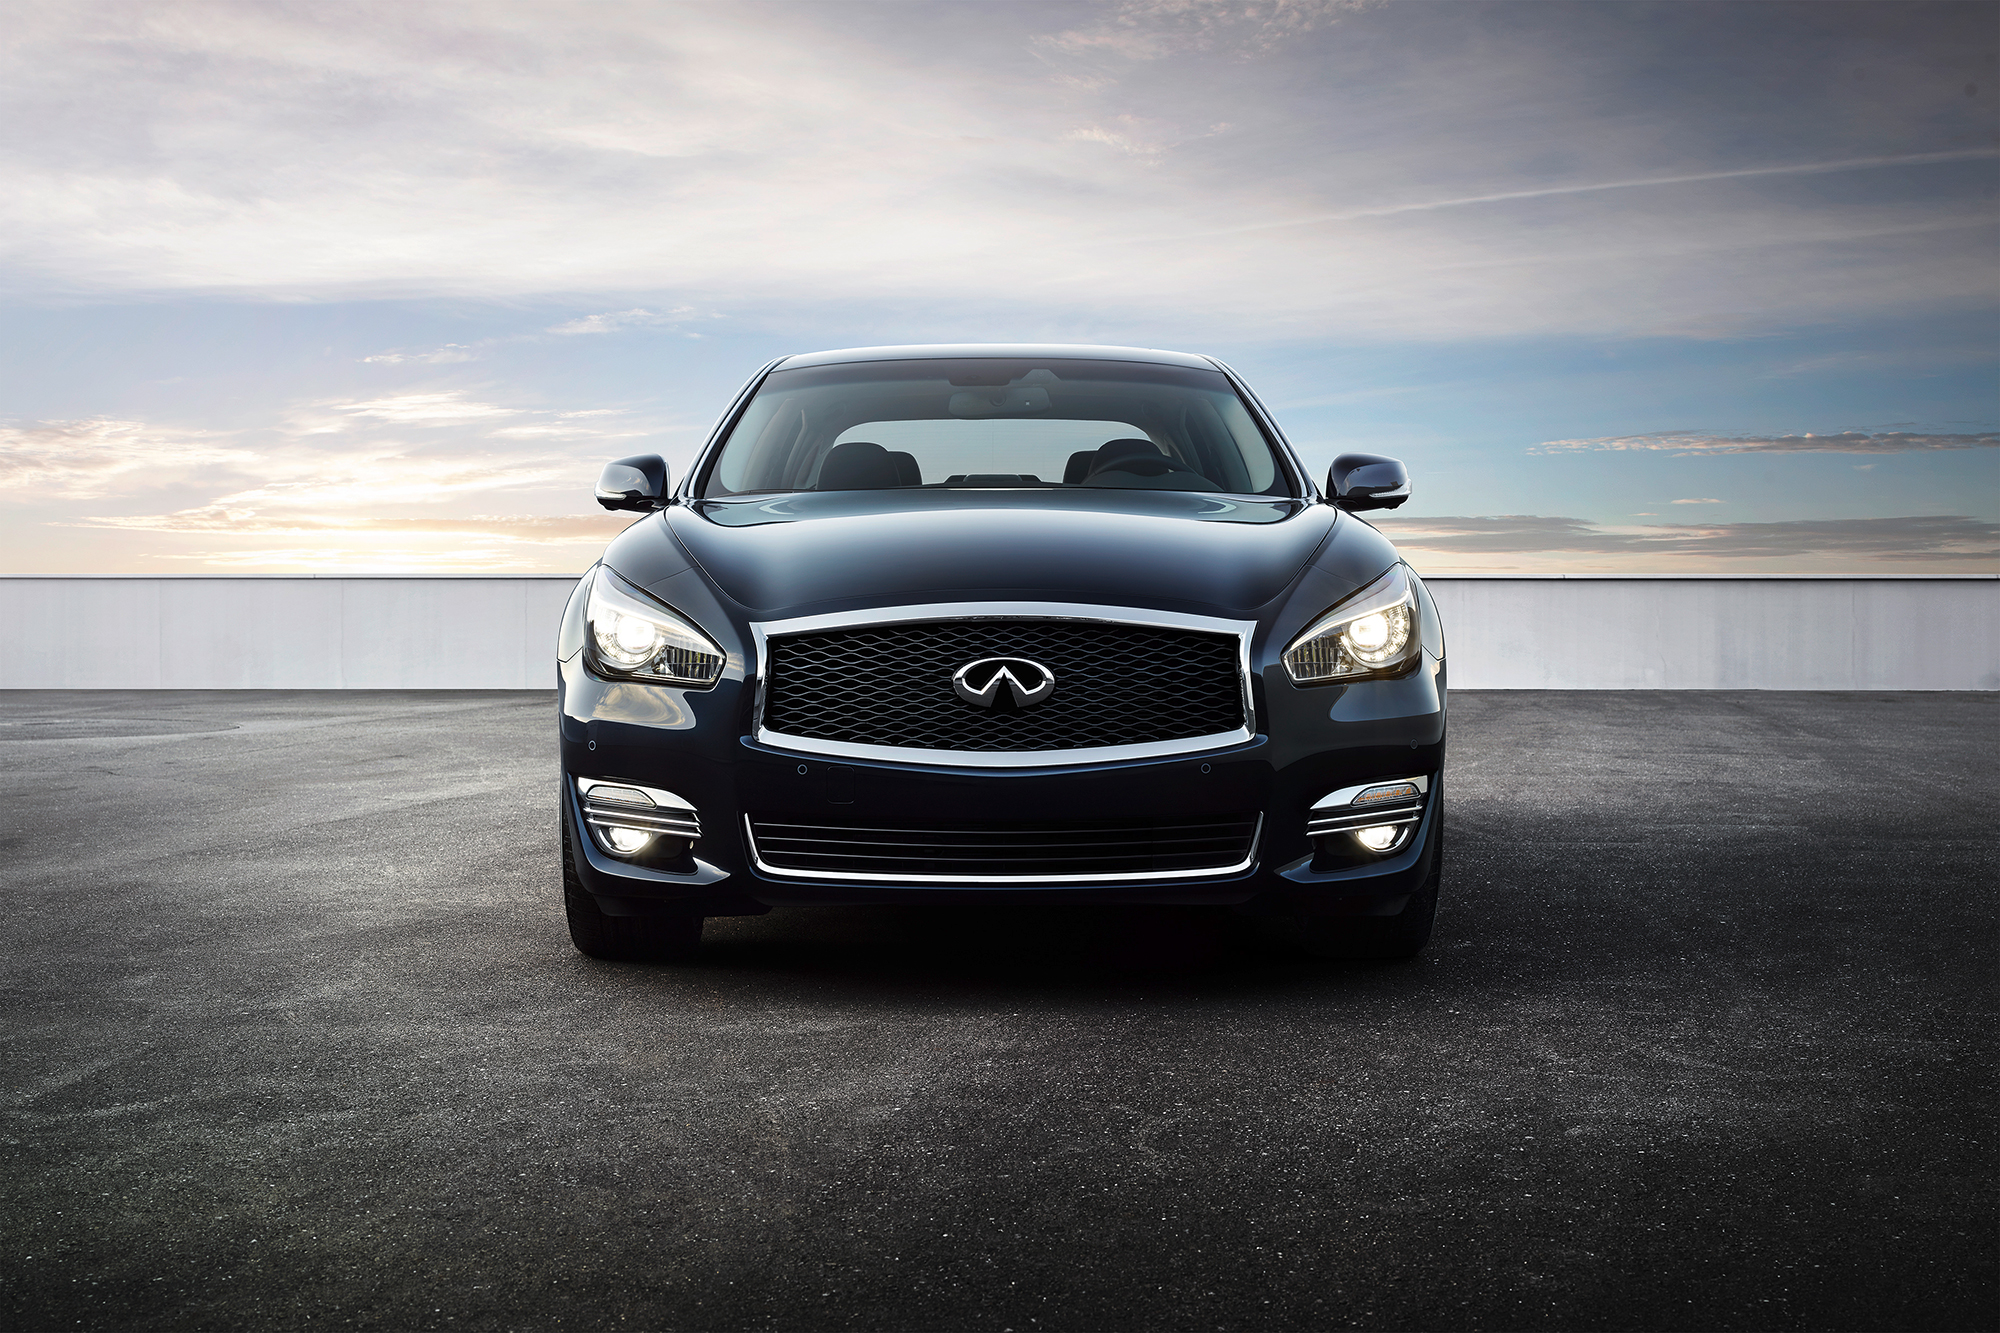 pixel wallpapers images infiniti infinity and hd hybrid wallpaper uk car wide